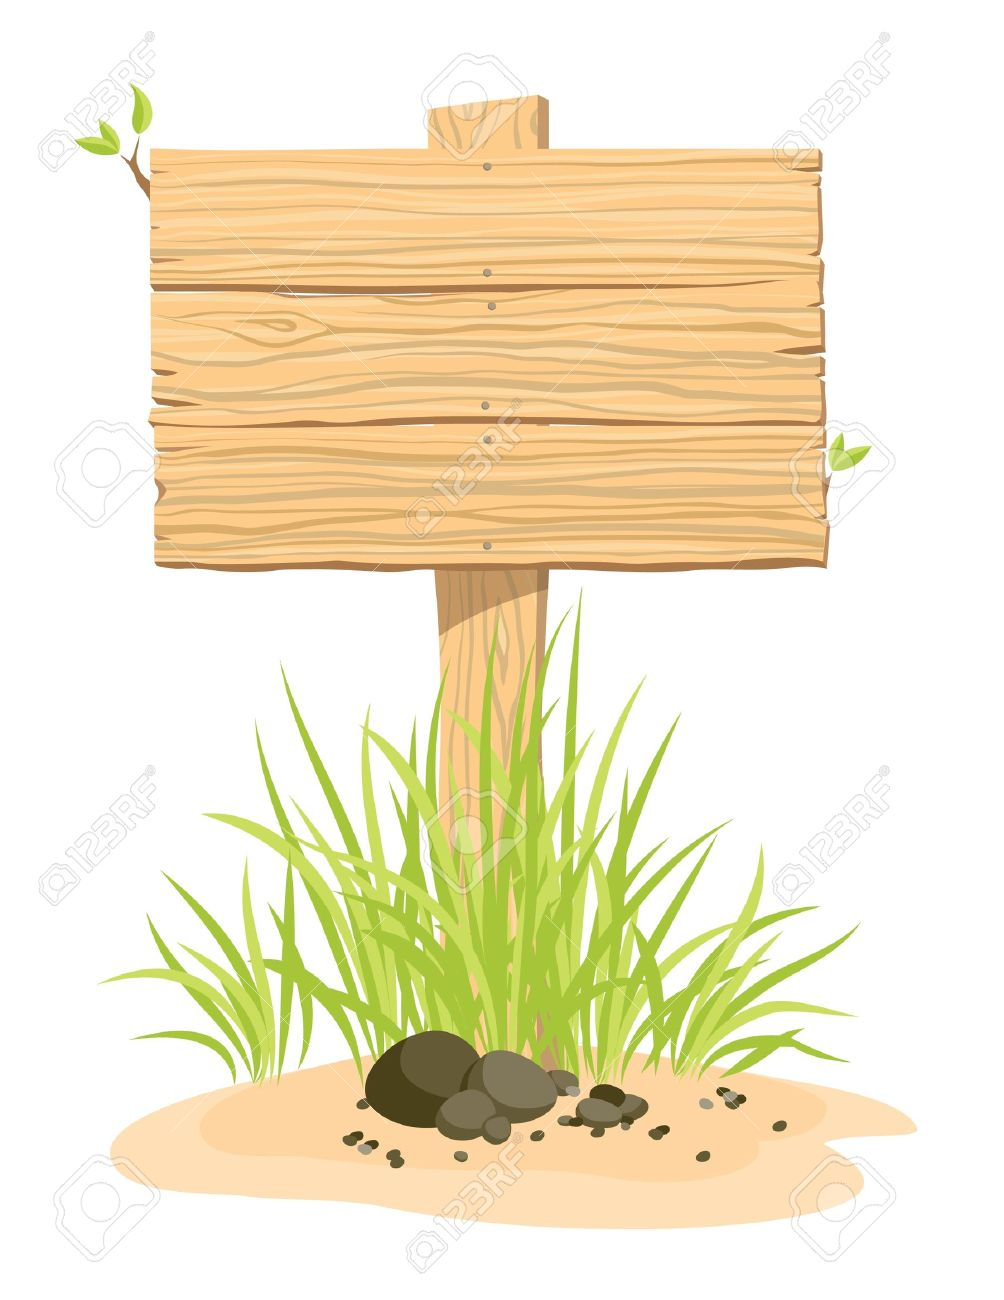 Wooden sign with green grass. An illustration. Stock Vector - 9832904